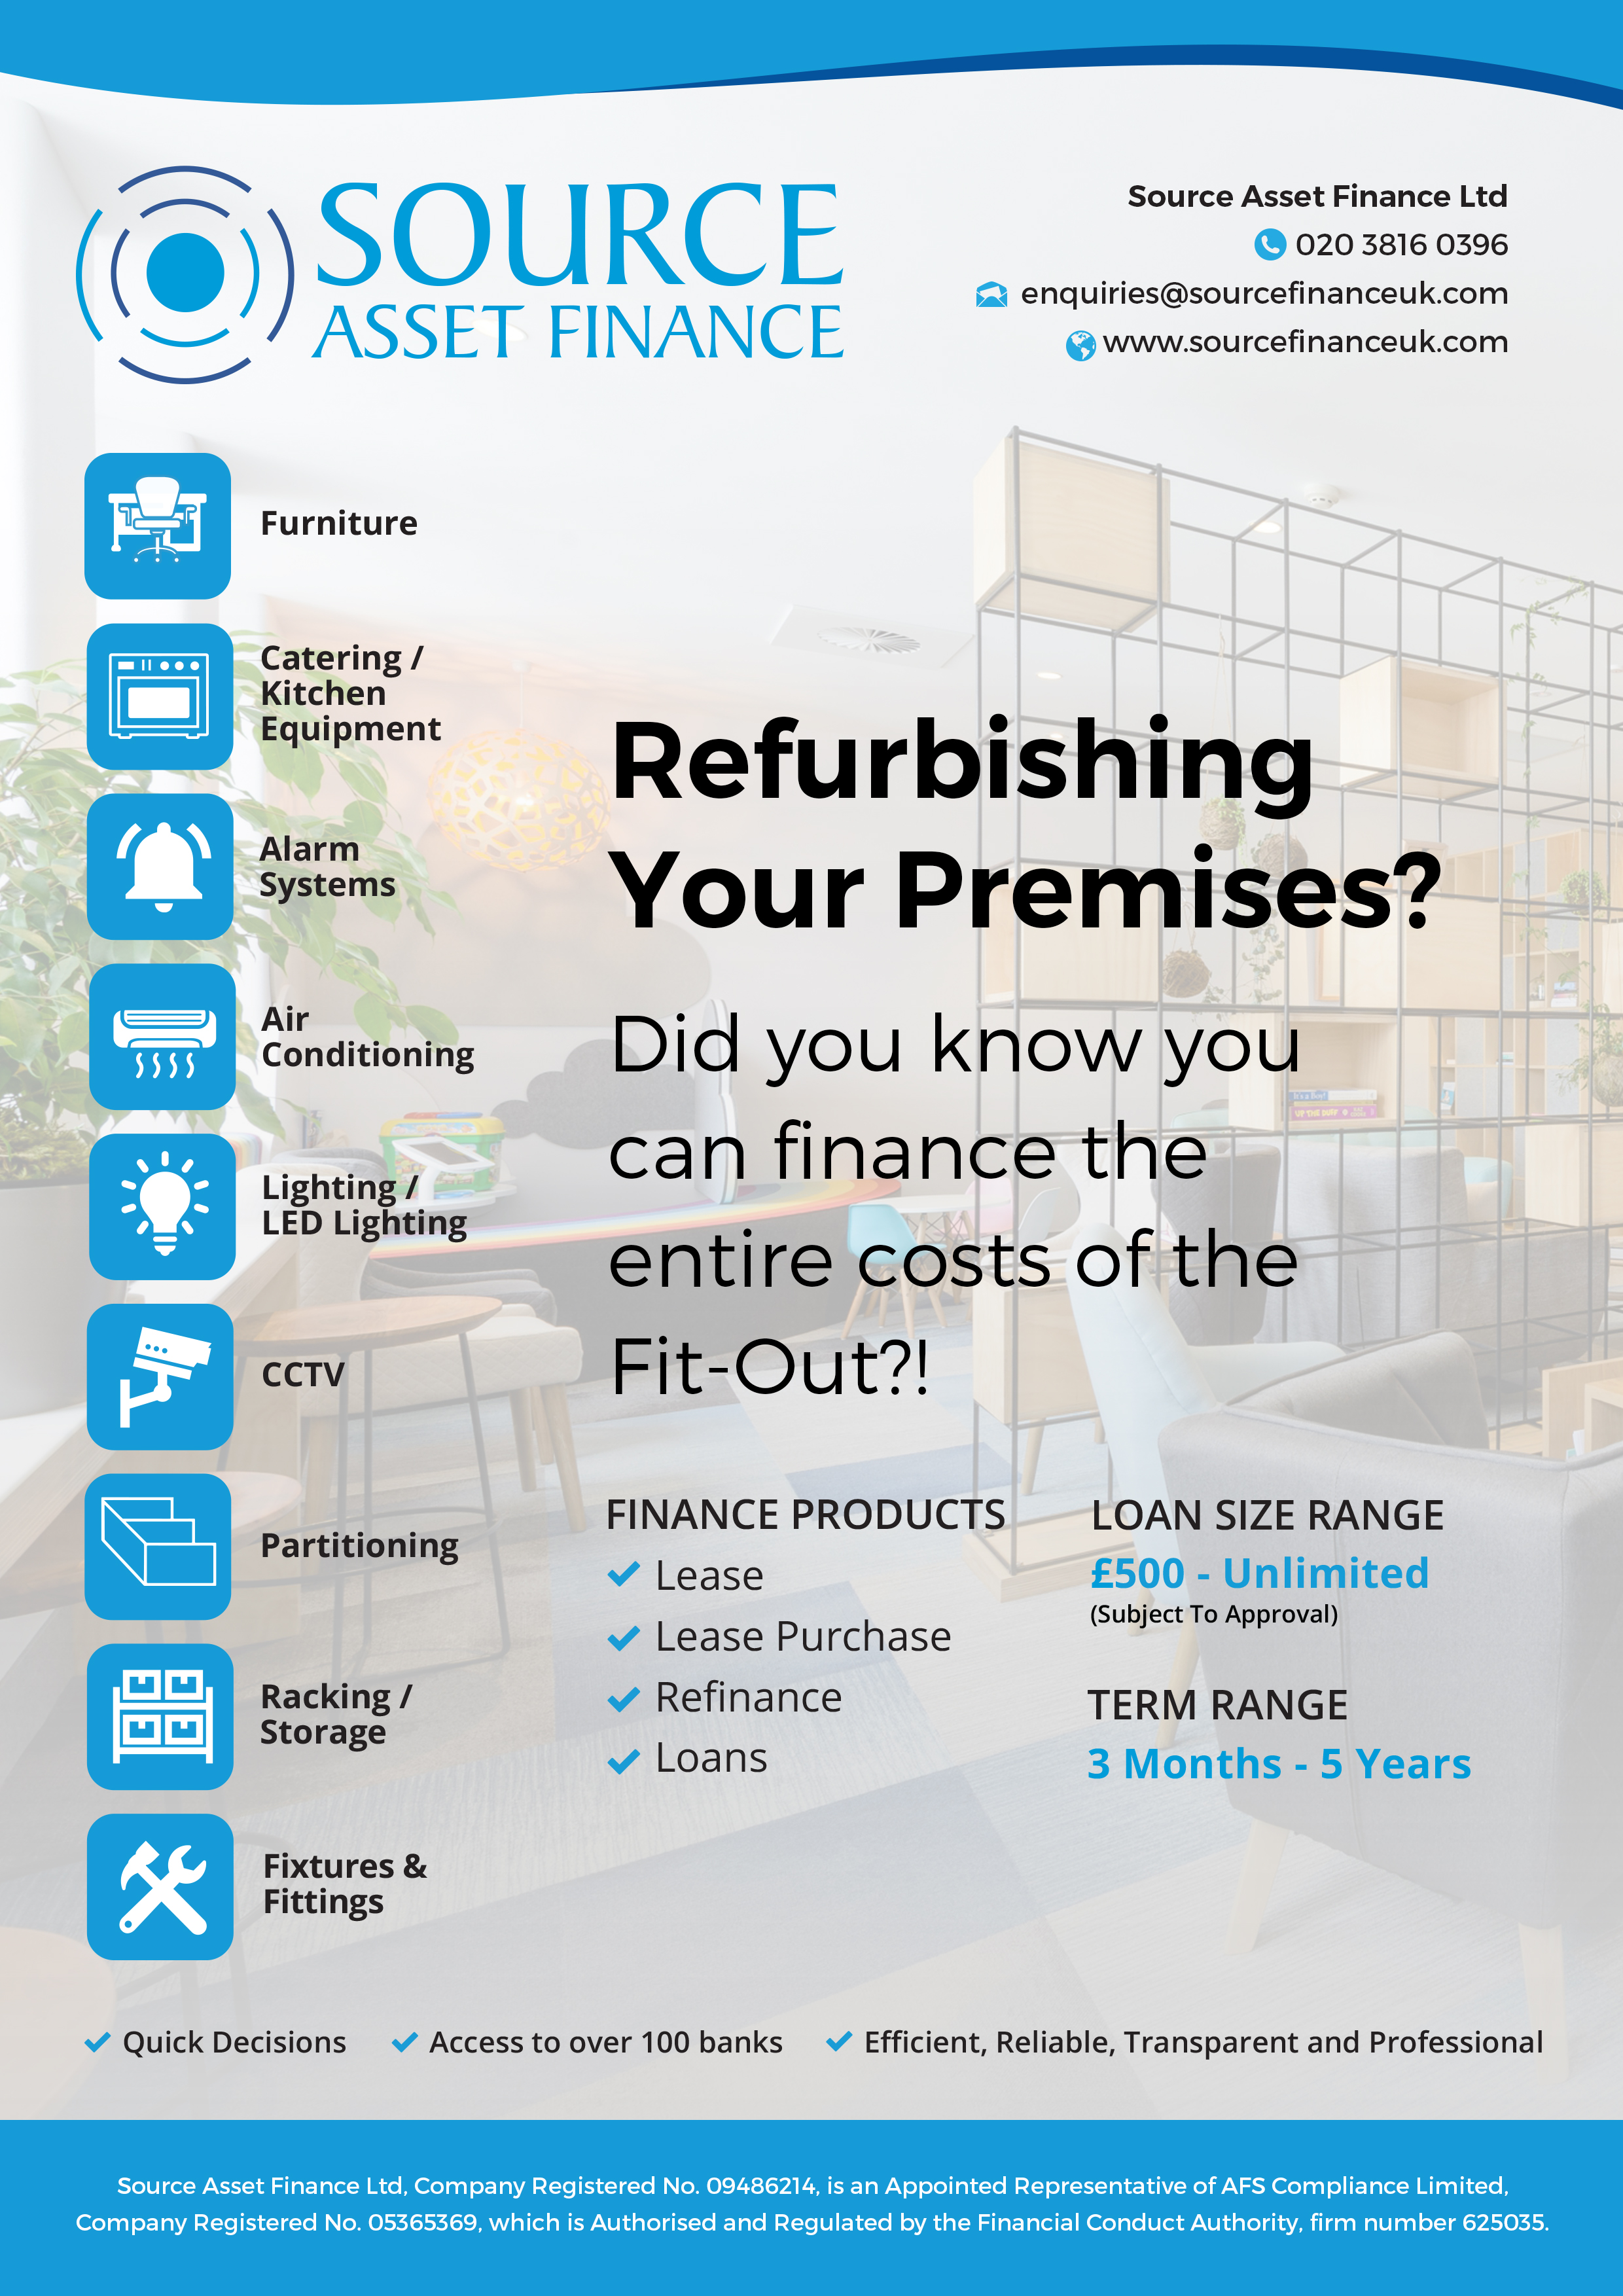 refurbishment finance fit-out lease hire purchase loan funding pub hotel restaurant office shop workshop